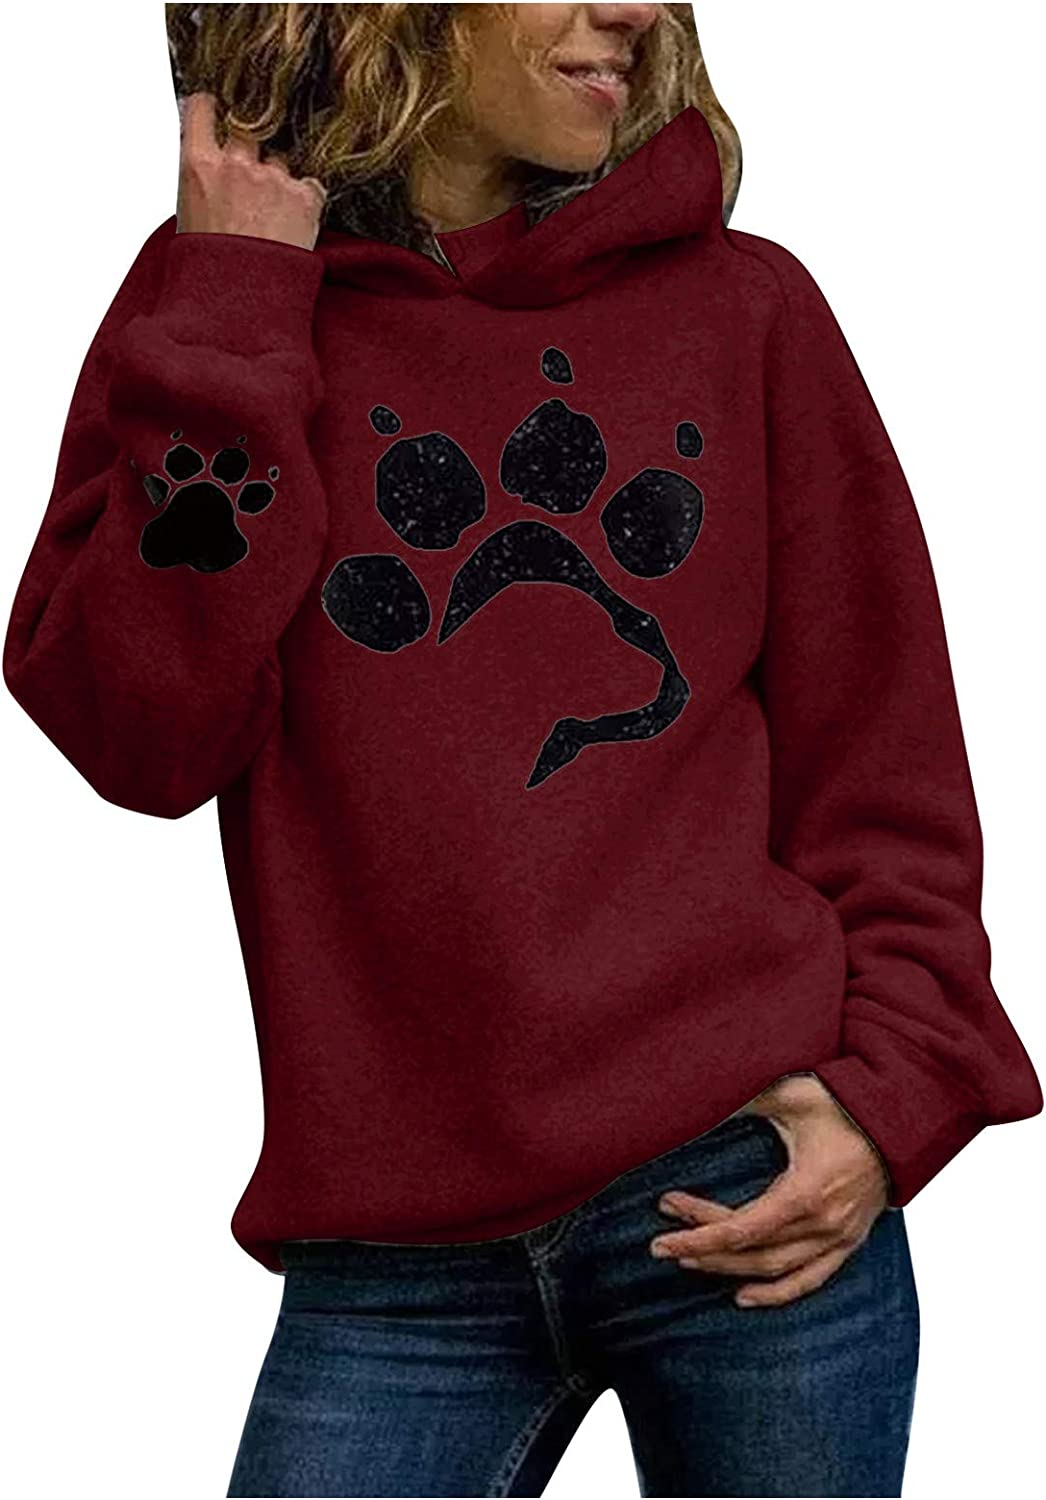 Jiayit Women's Fall Tops Casual Cat Paw Print Long-Sleeved Pullover Hooded Thin Fleece Winter Coat Sweater Womens Tops and Blouses for Outdoor Indoor